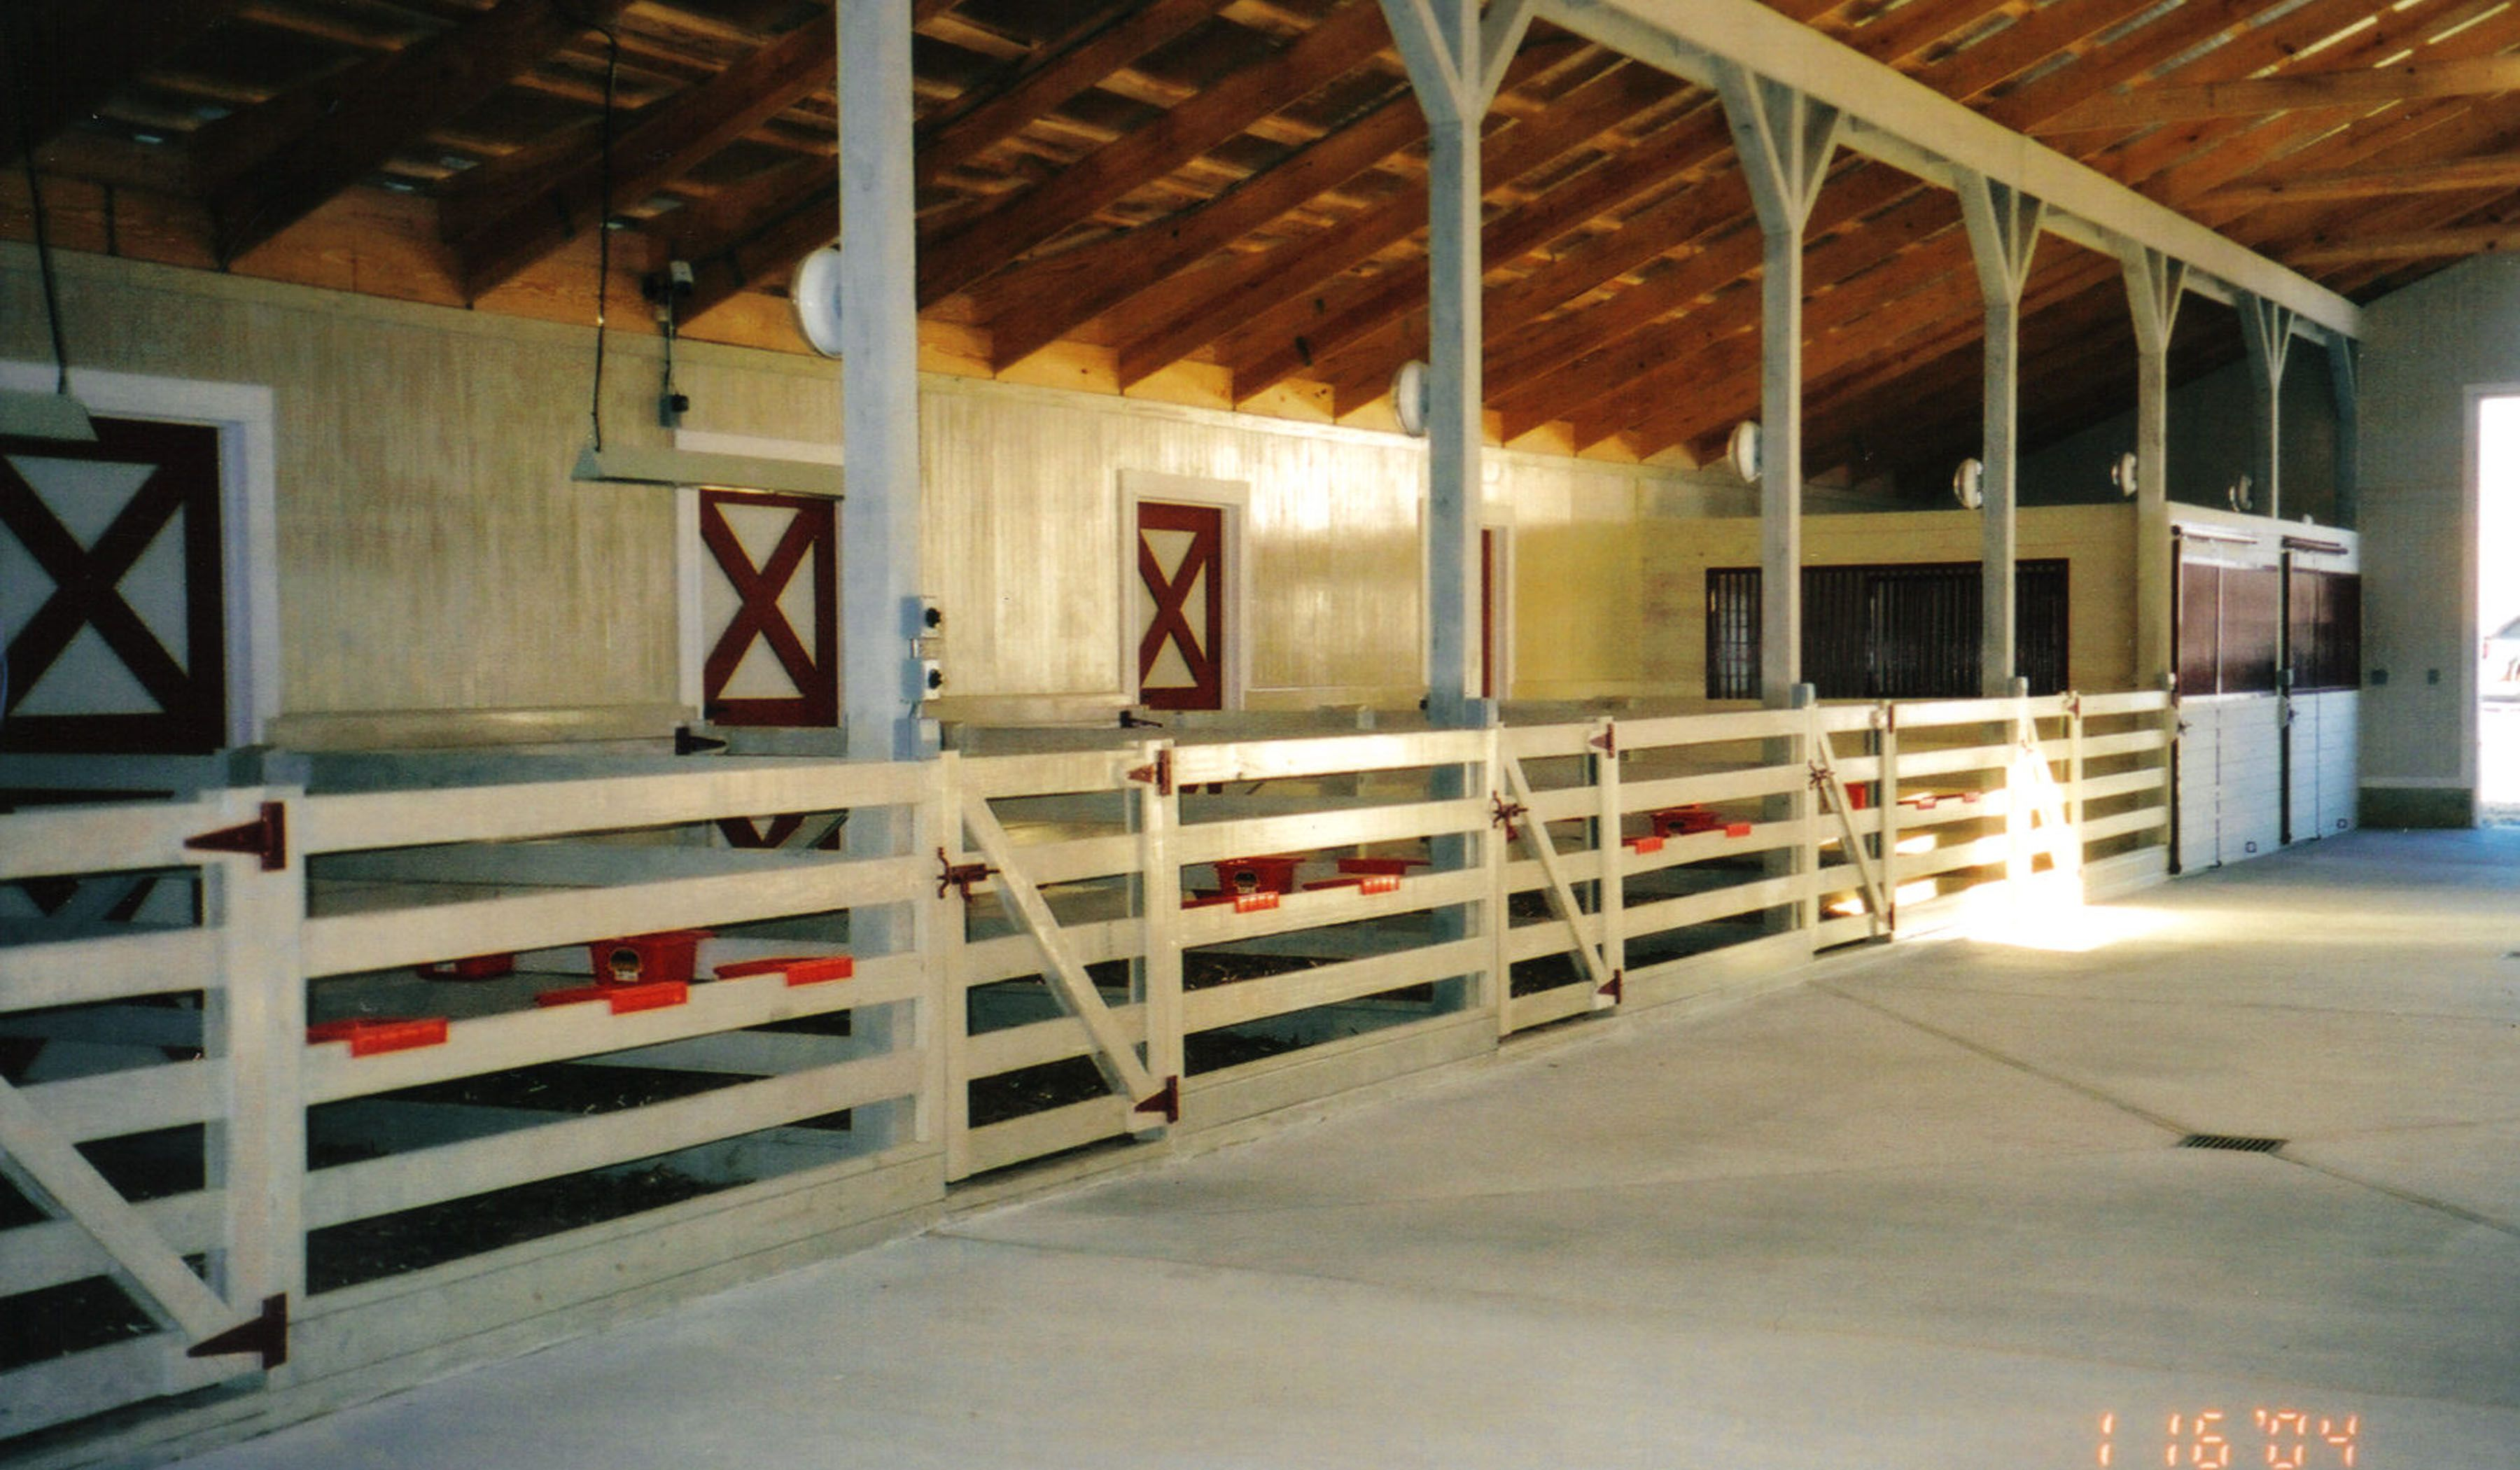 design decor inside barn designs with 42 x 108 horse barn interior design decor inside barn designs with 42 x 108 horse barn interior horse barn design - Horse Barn Design Ideas